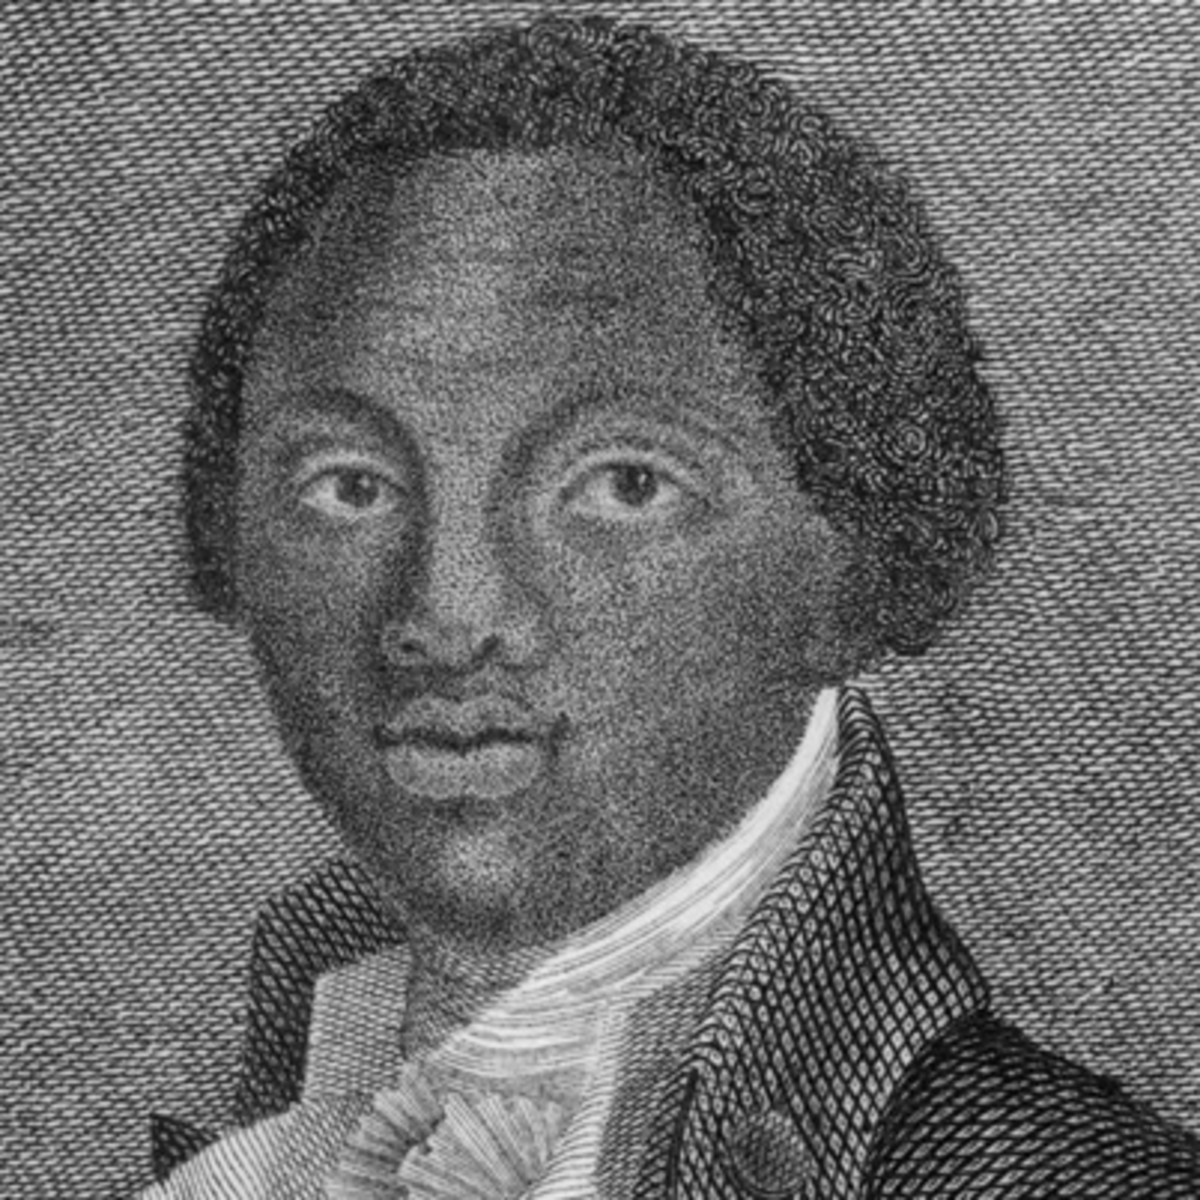 olaudah equiano journalist activist biography com